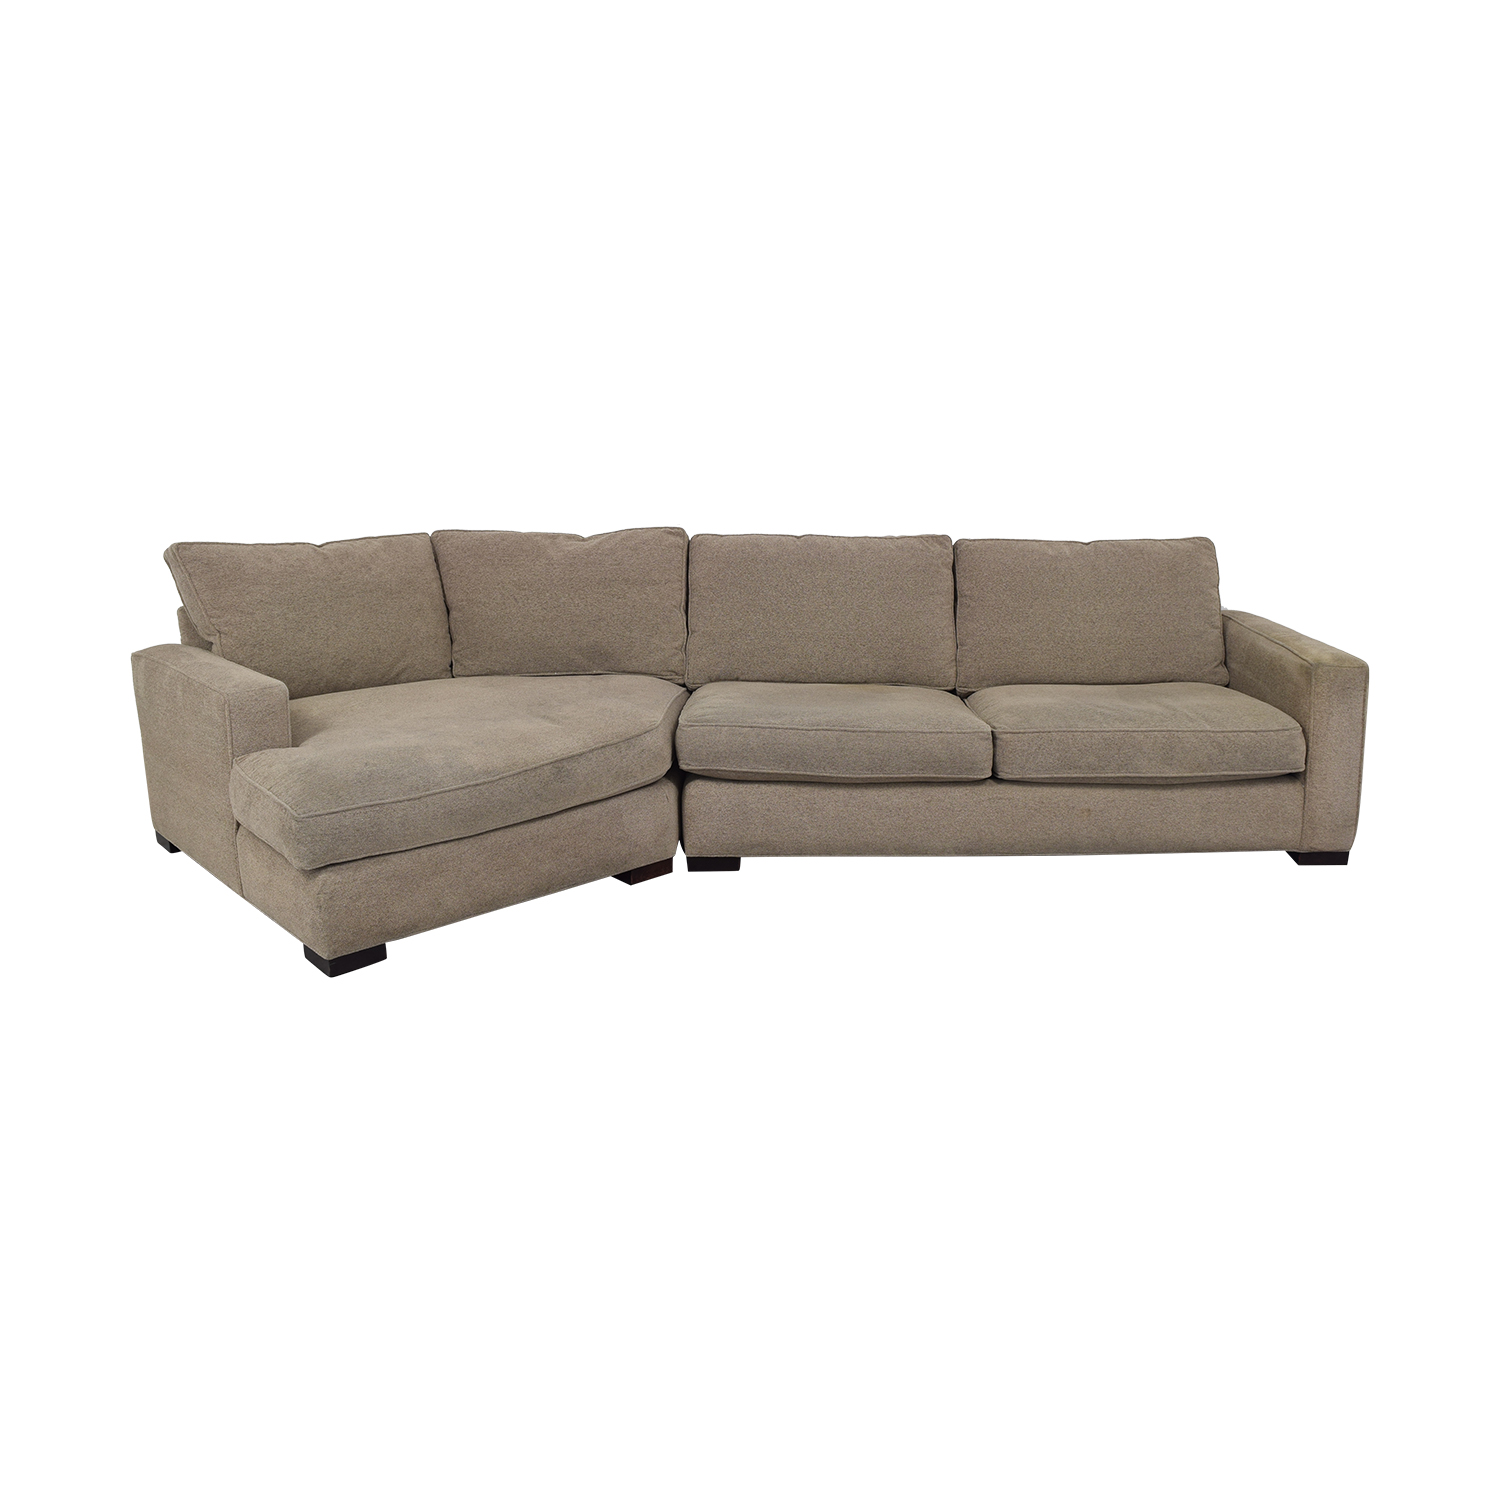 Room & Board Custom Sectional Sofa / Sofas